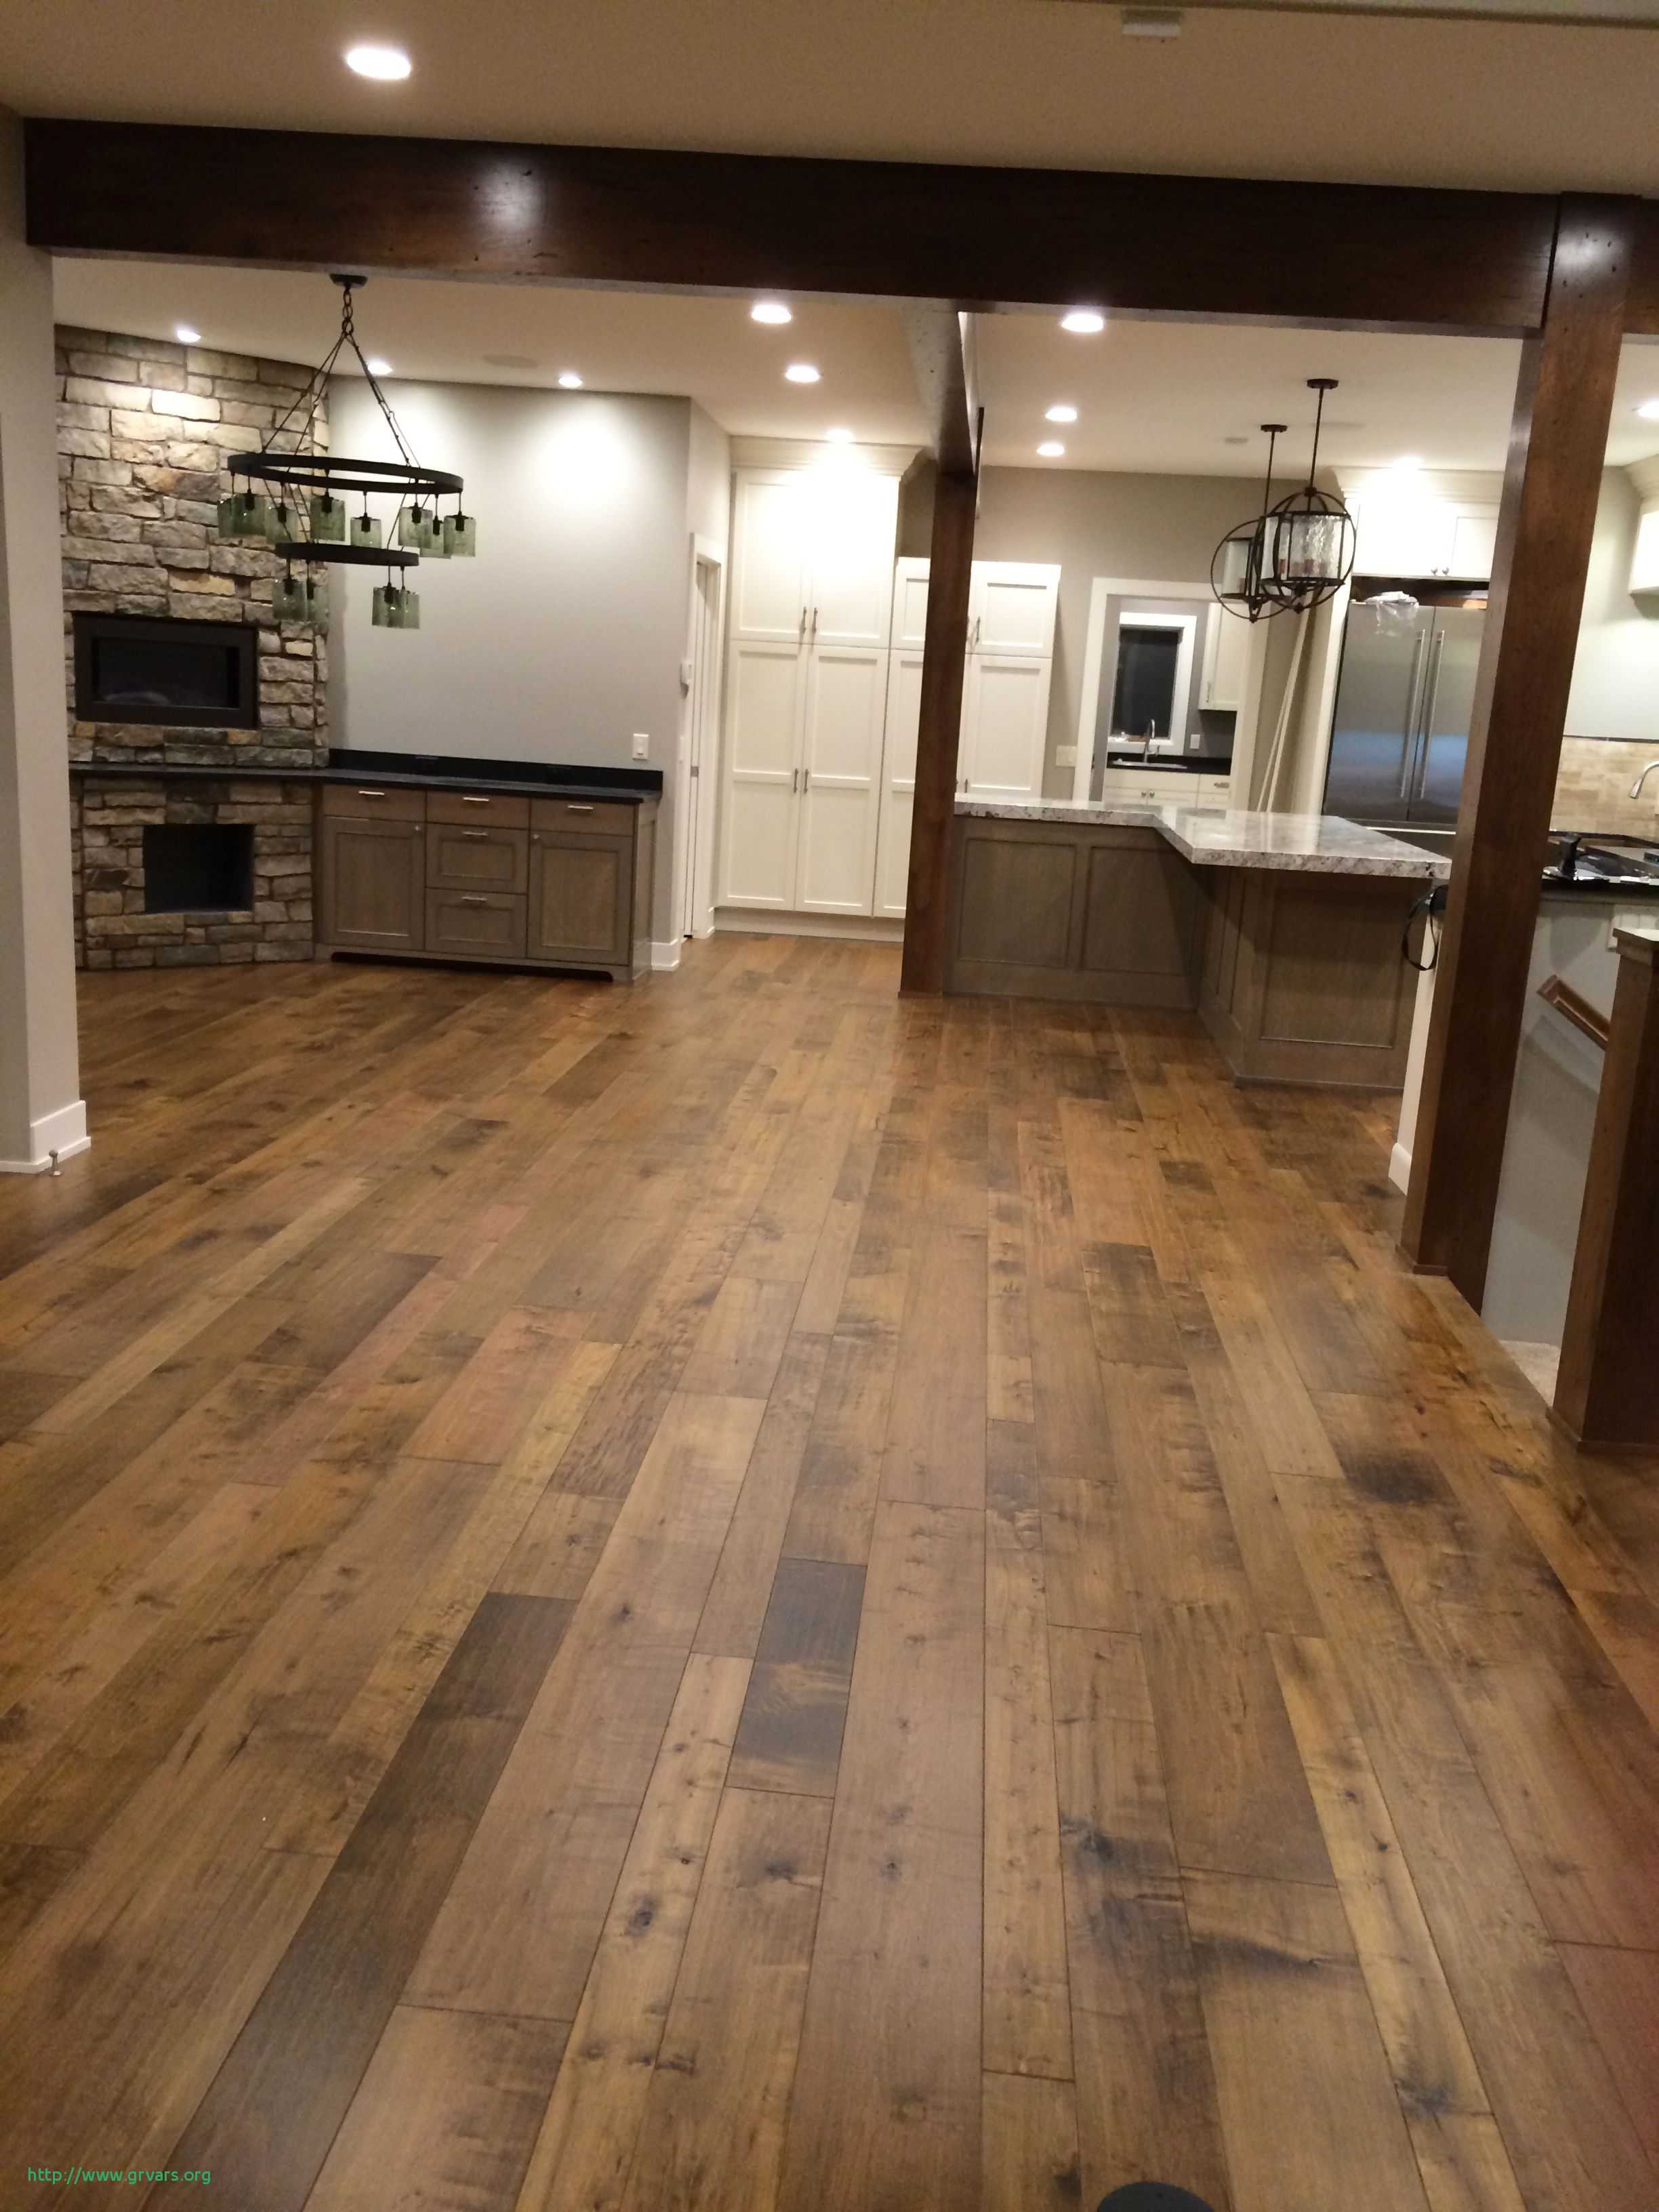 engineered hardwood flooring canada of 21 beau cheapest hardwood flooring in toronto ideas blog intended for cheapest hardwood flooring in toronto impressionnant monterey hardwood collection rooms and spaces